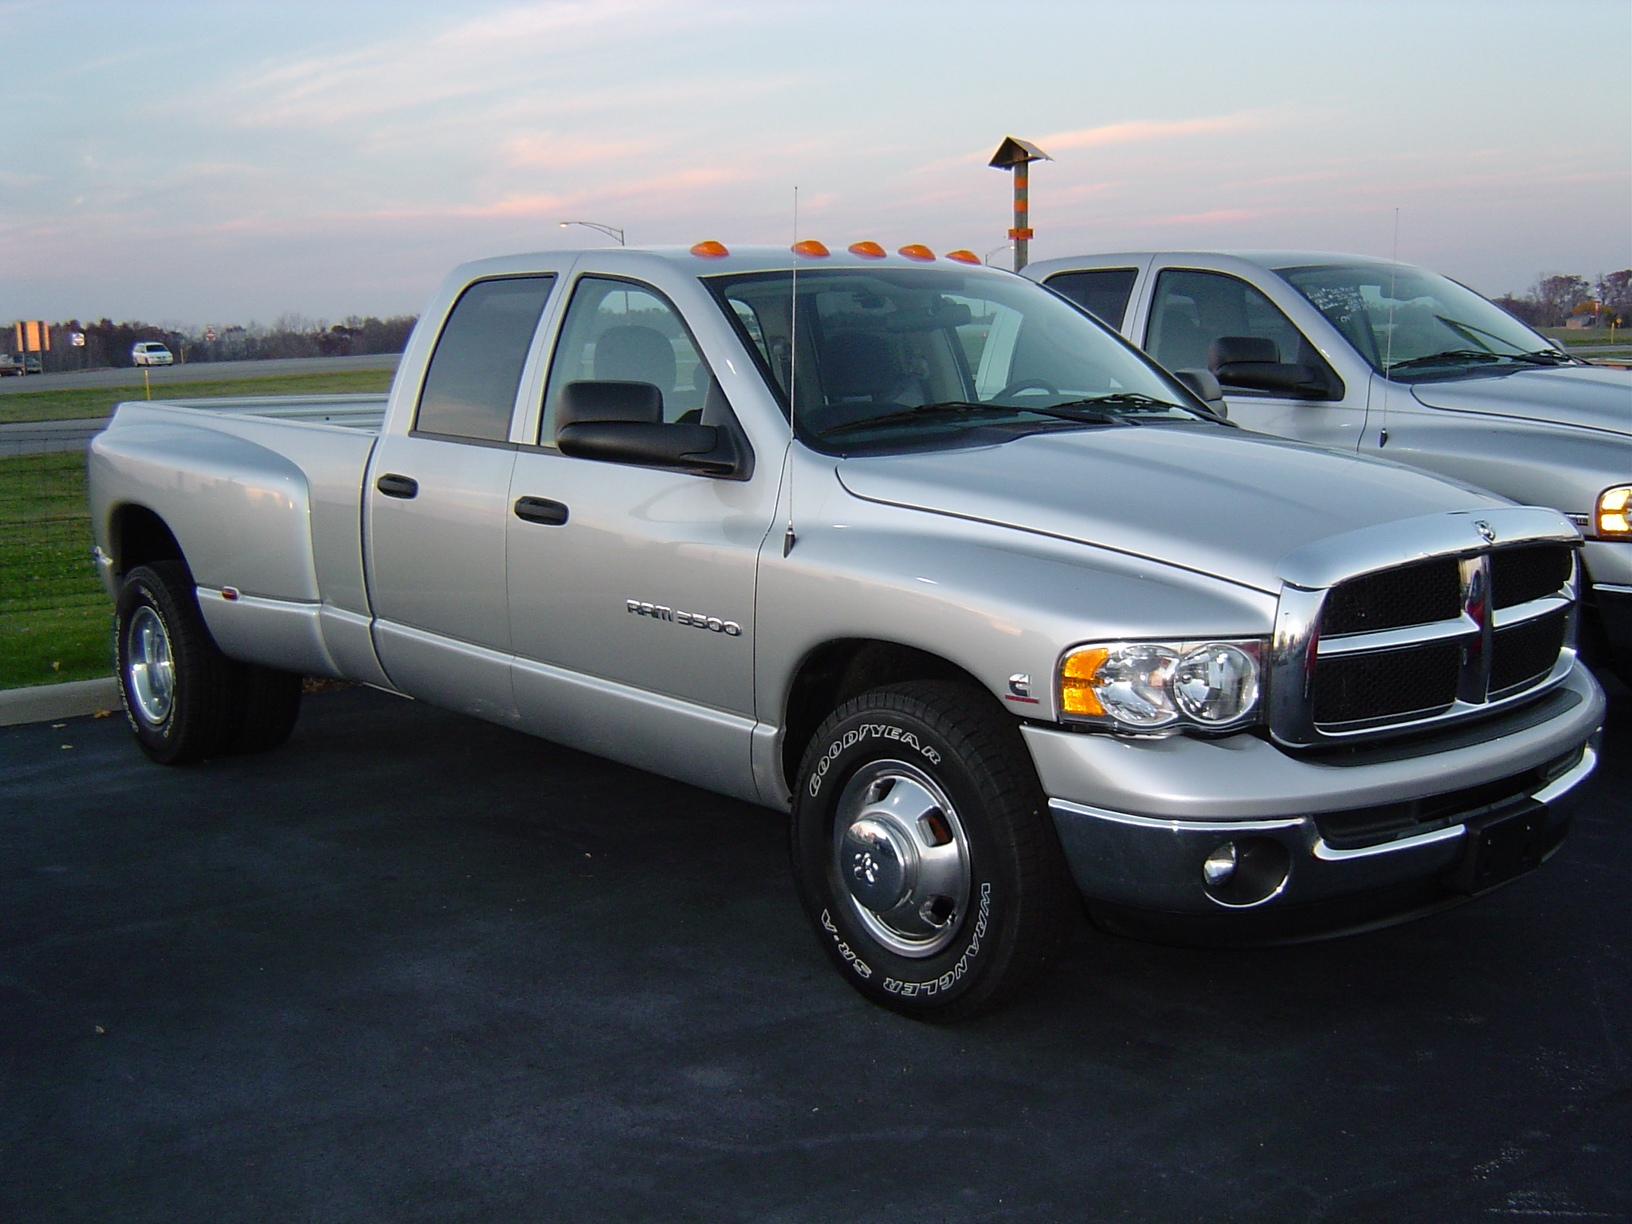 Dodge Ram To Replace The Ignition Switch In A 1992 S10 Chevy Truck Thumbnail